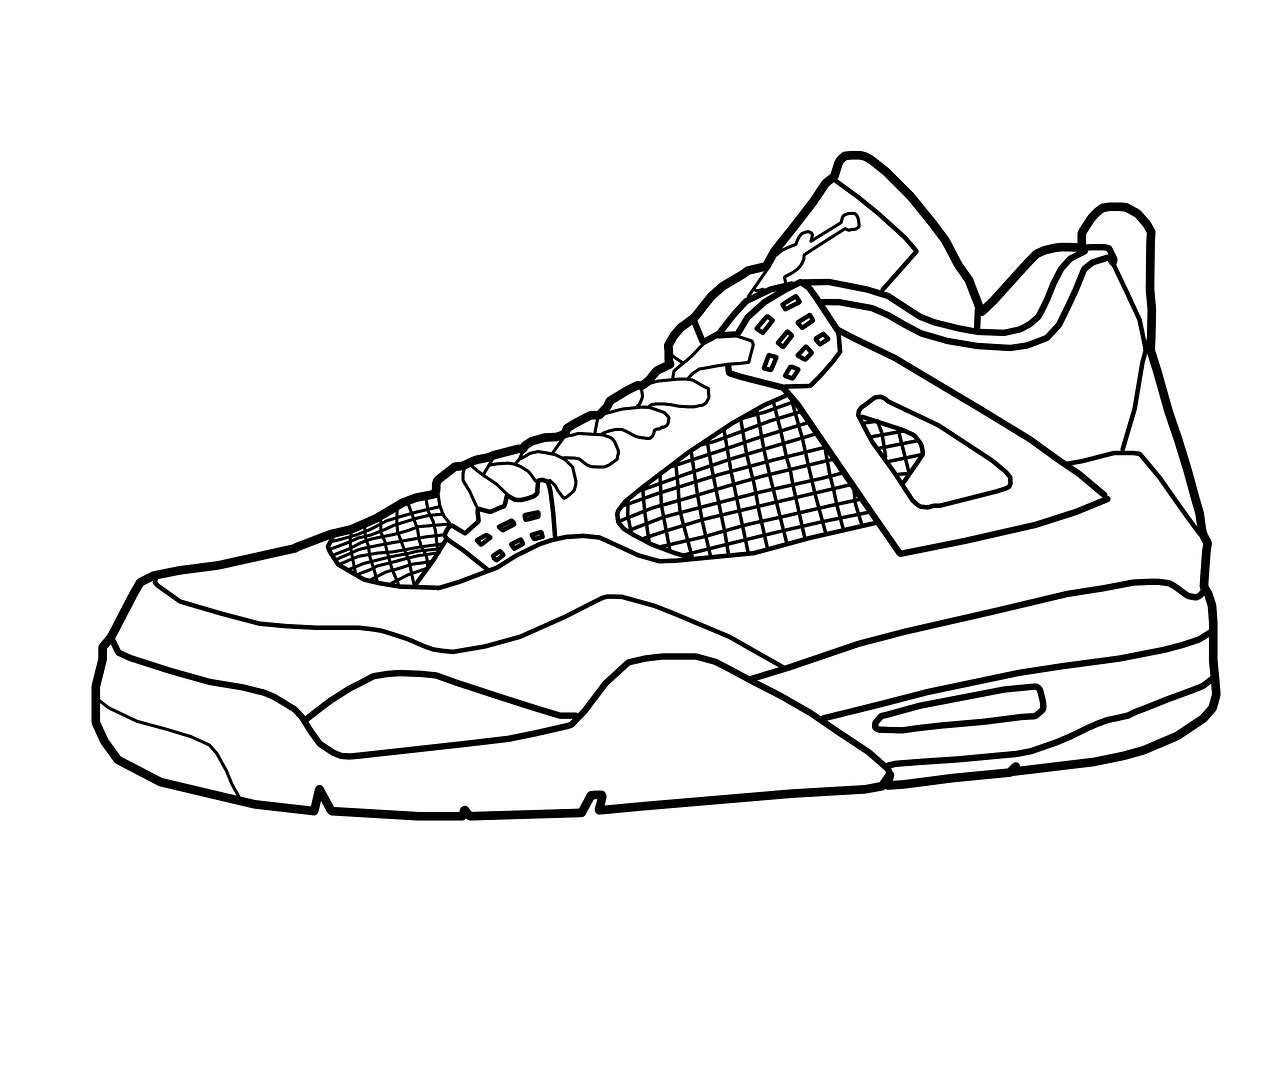 Drawn shoe Coloring Drawing Pages Sub Drawing